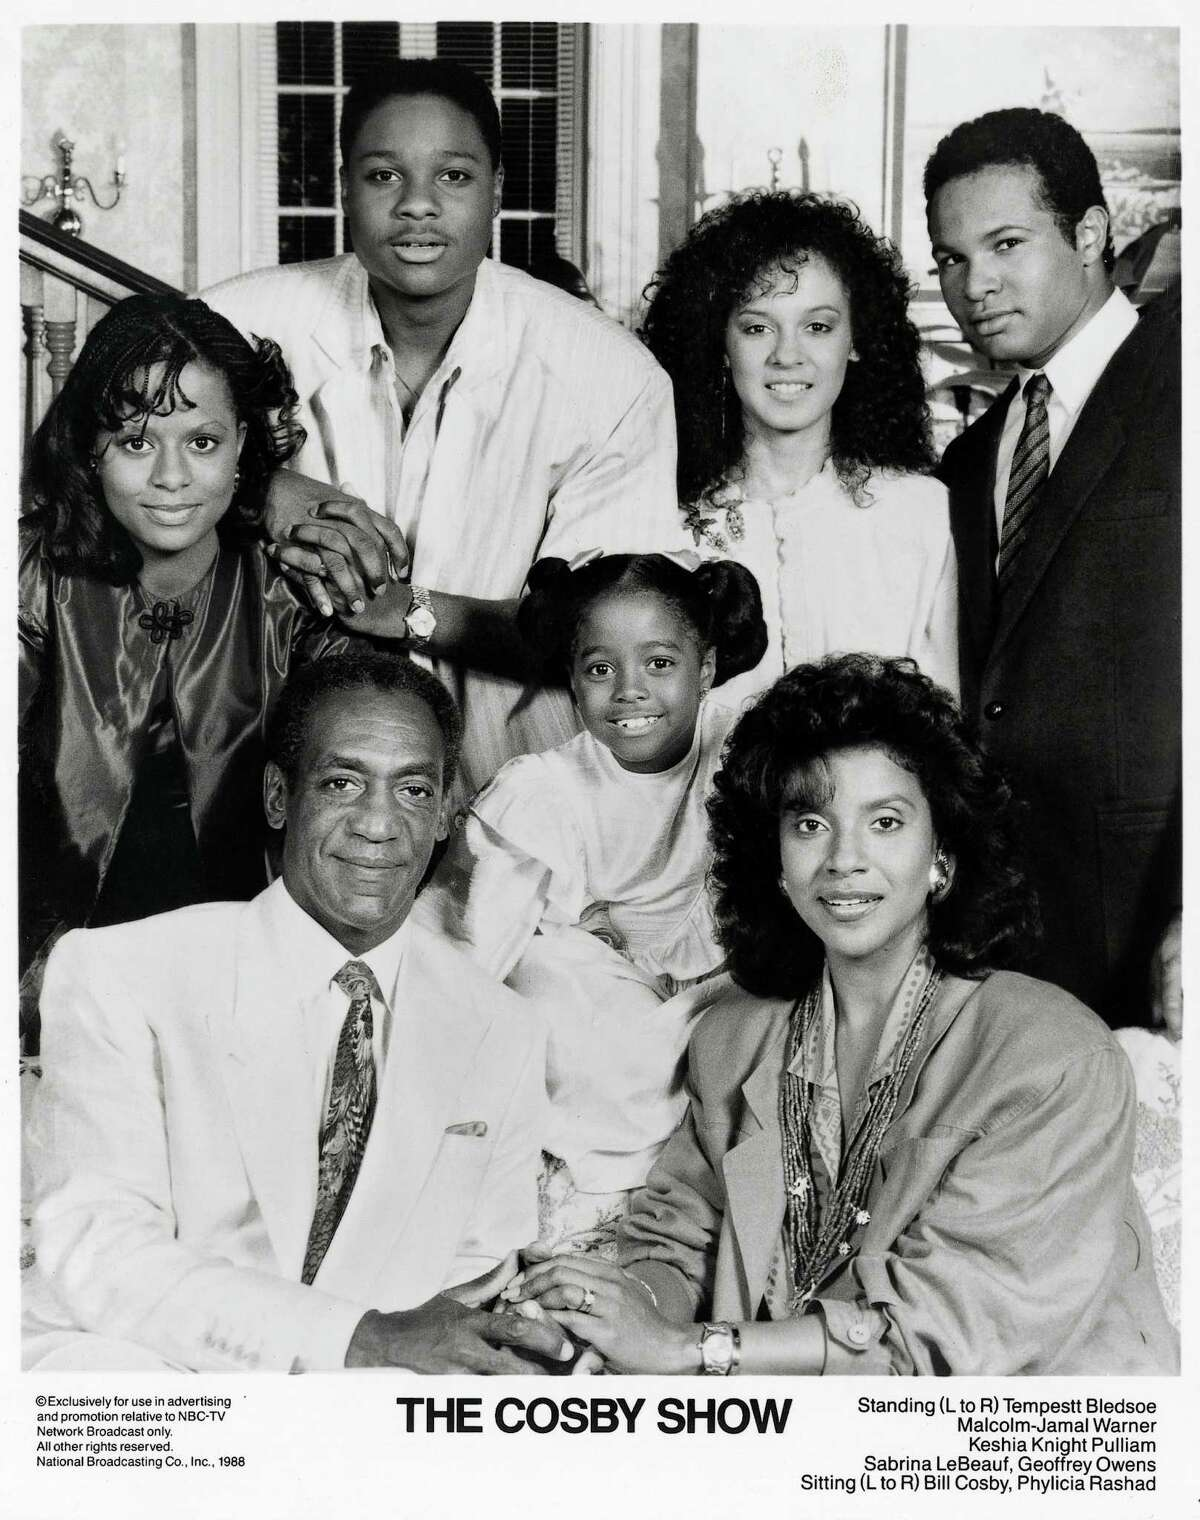 The show was filmed in New York City at Cosby's insistence. Initially shot in Brooklyn during its earlier episodes, filming later moved to Queens. However, the Huxtable brownstone featured in exterior shots is located in Greenwich Village in Manhattan.